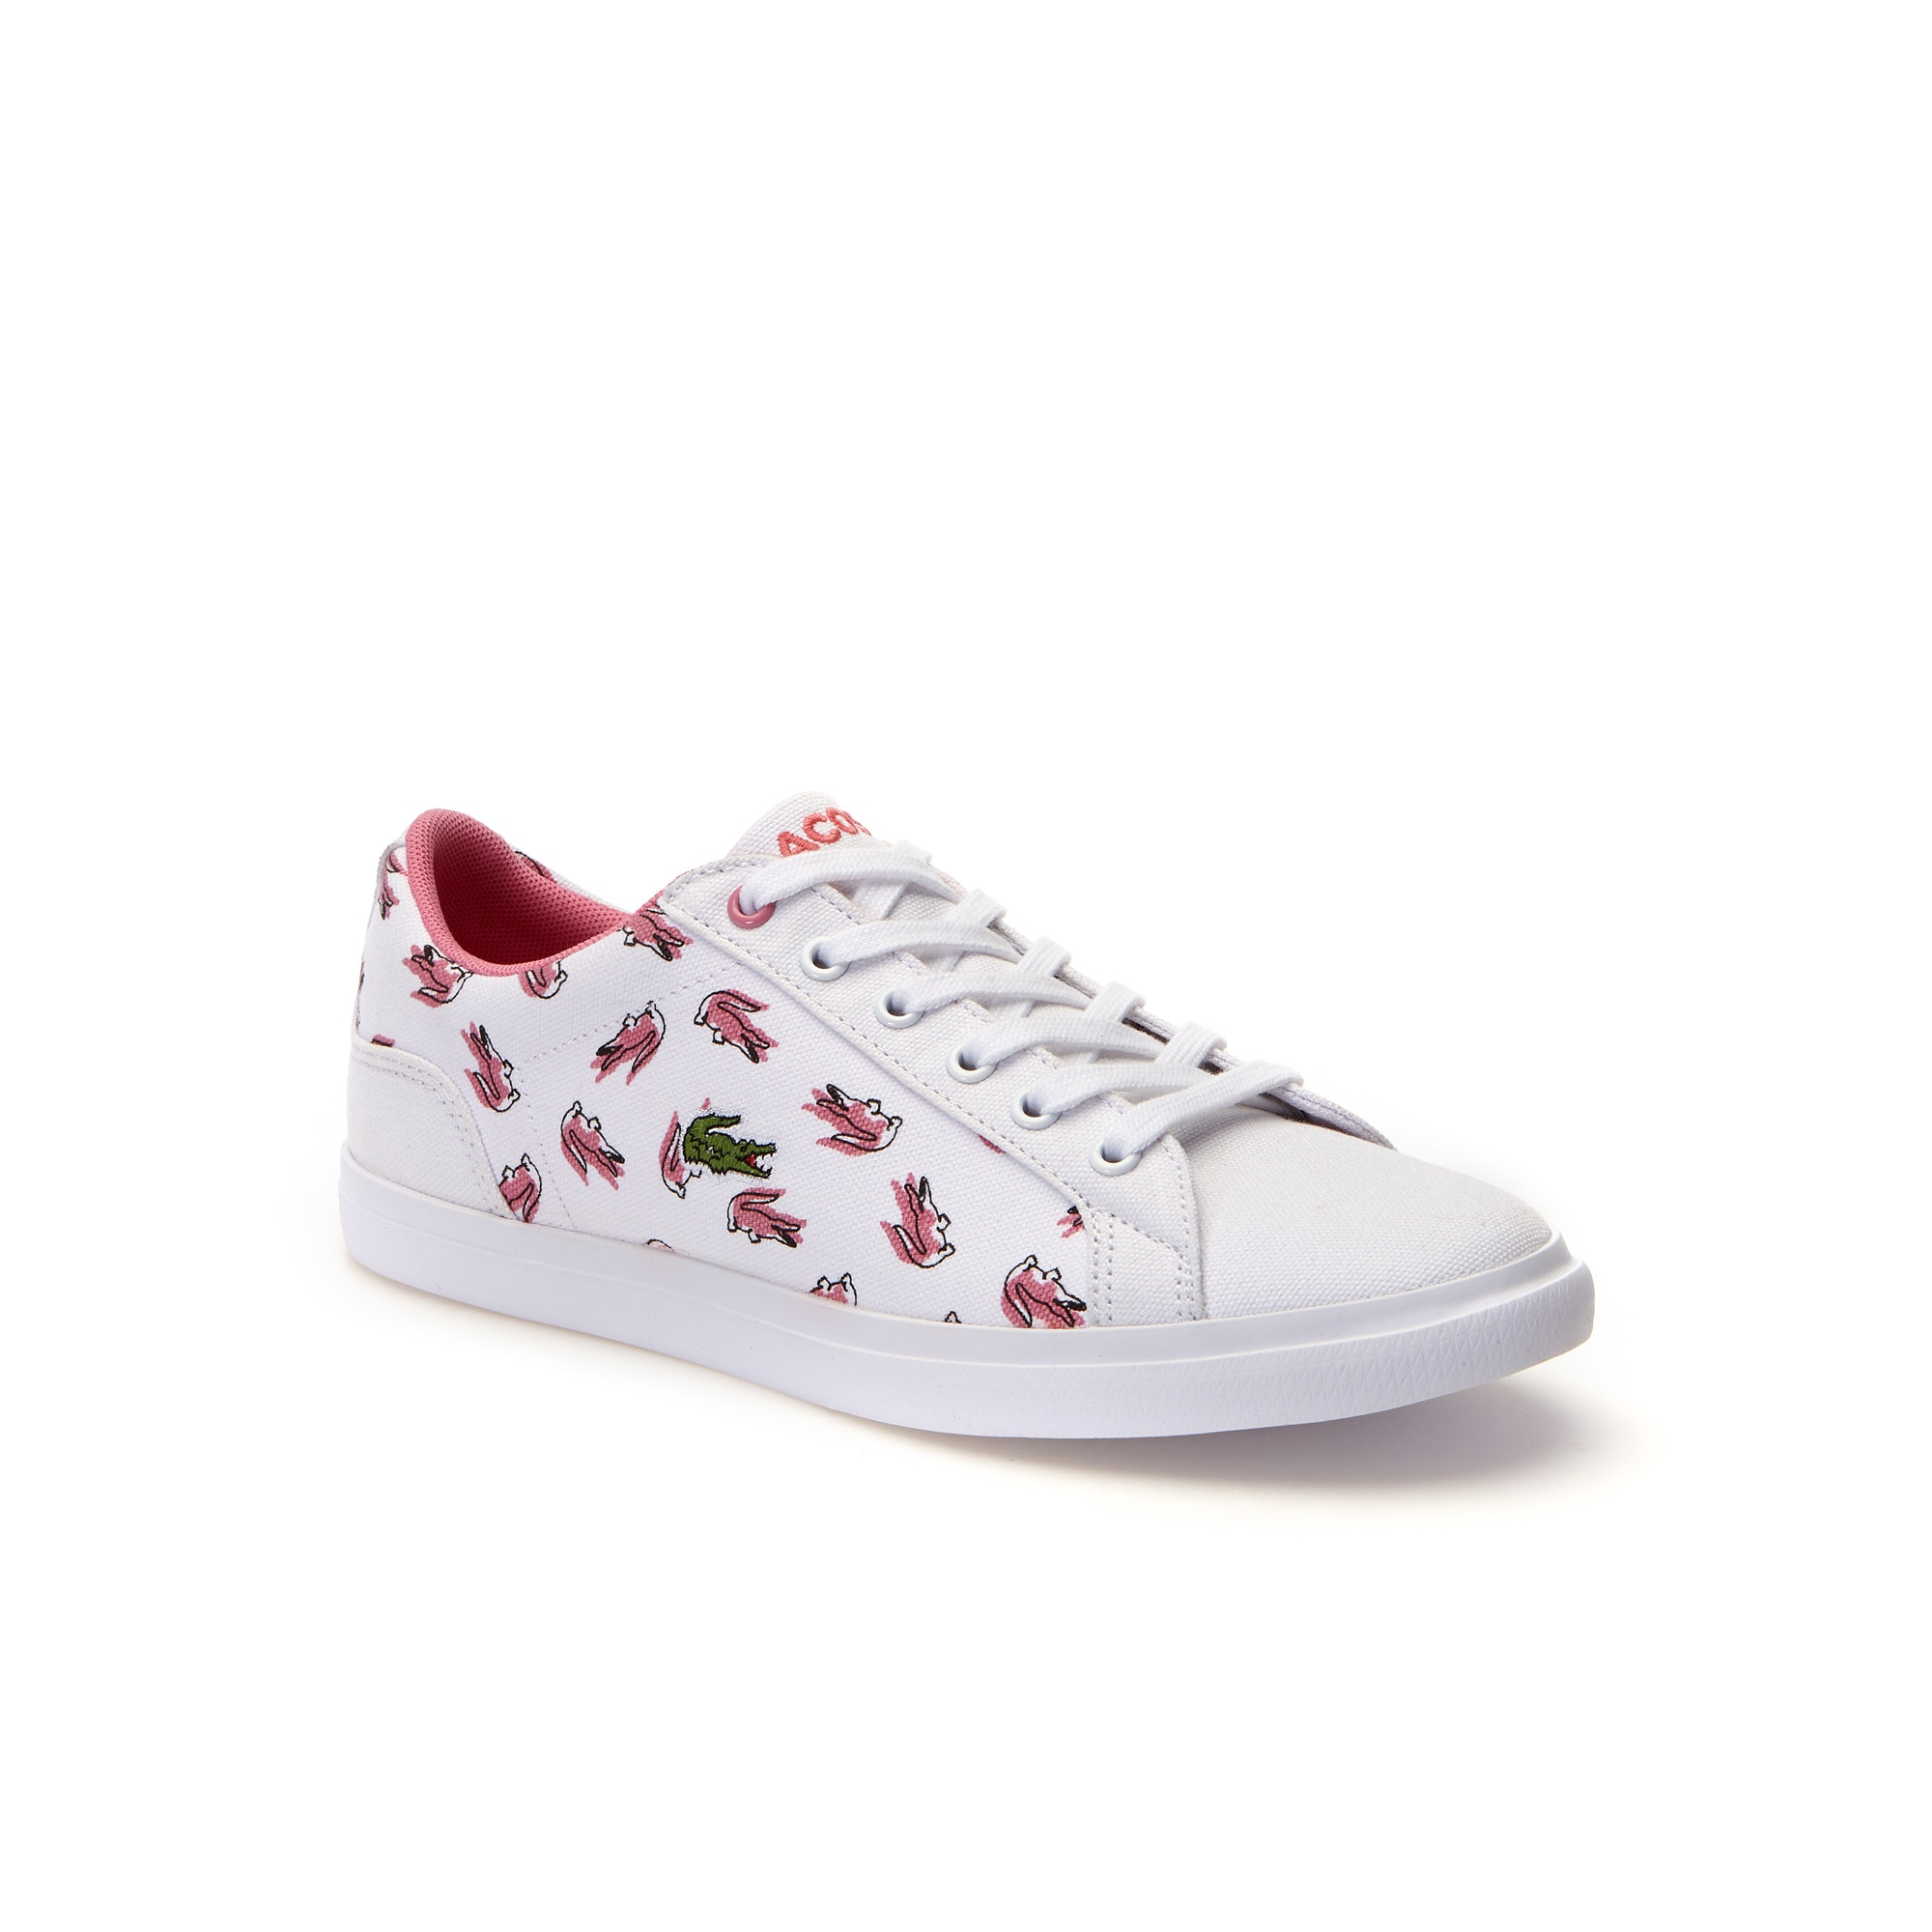 Youths' Lerond Textile Trainers